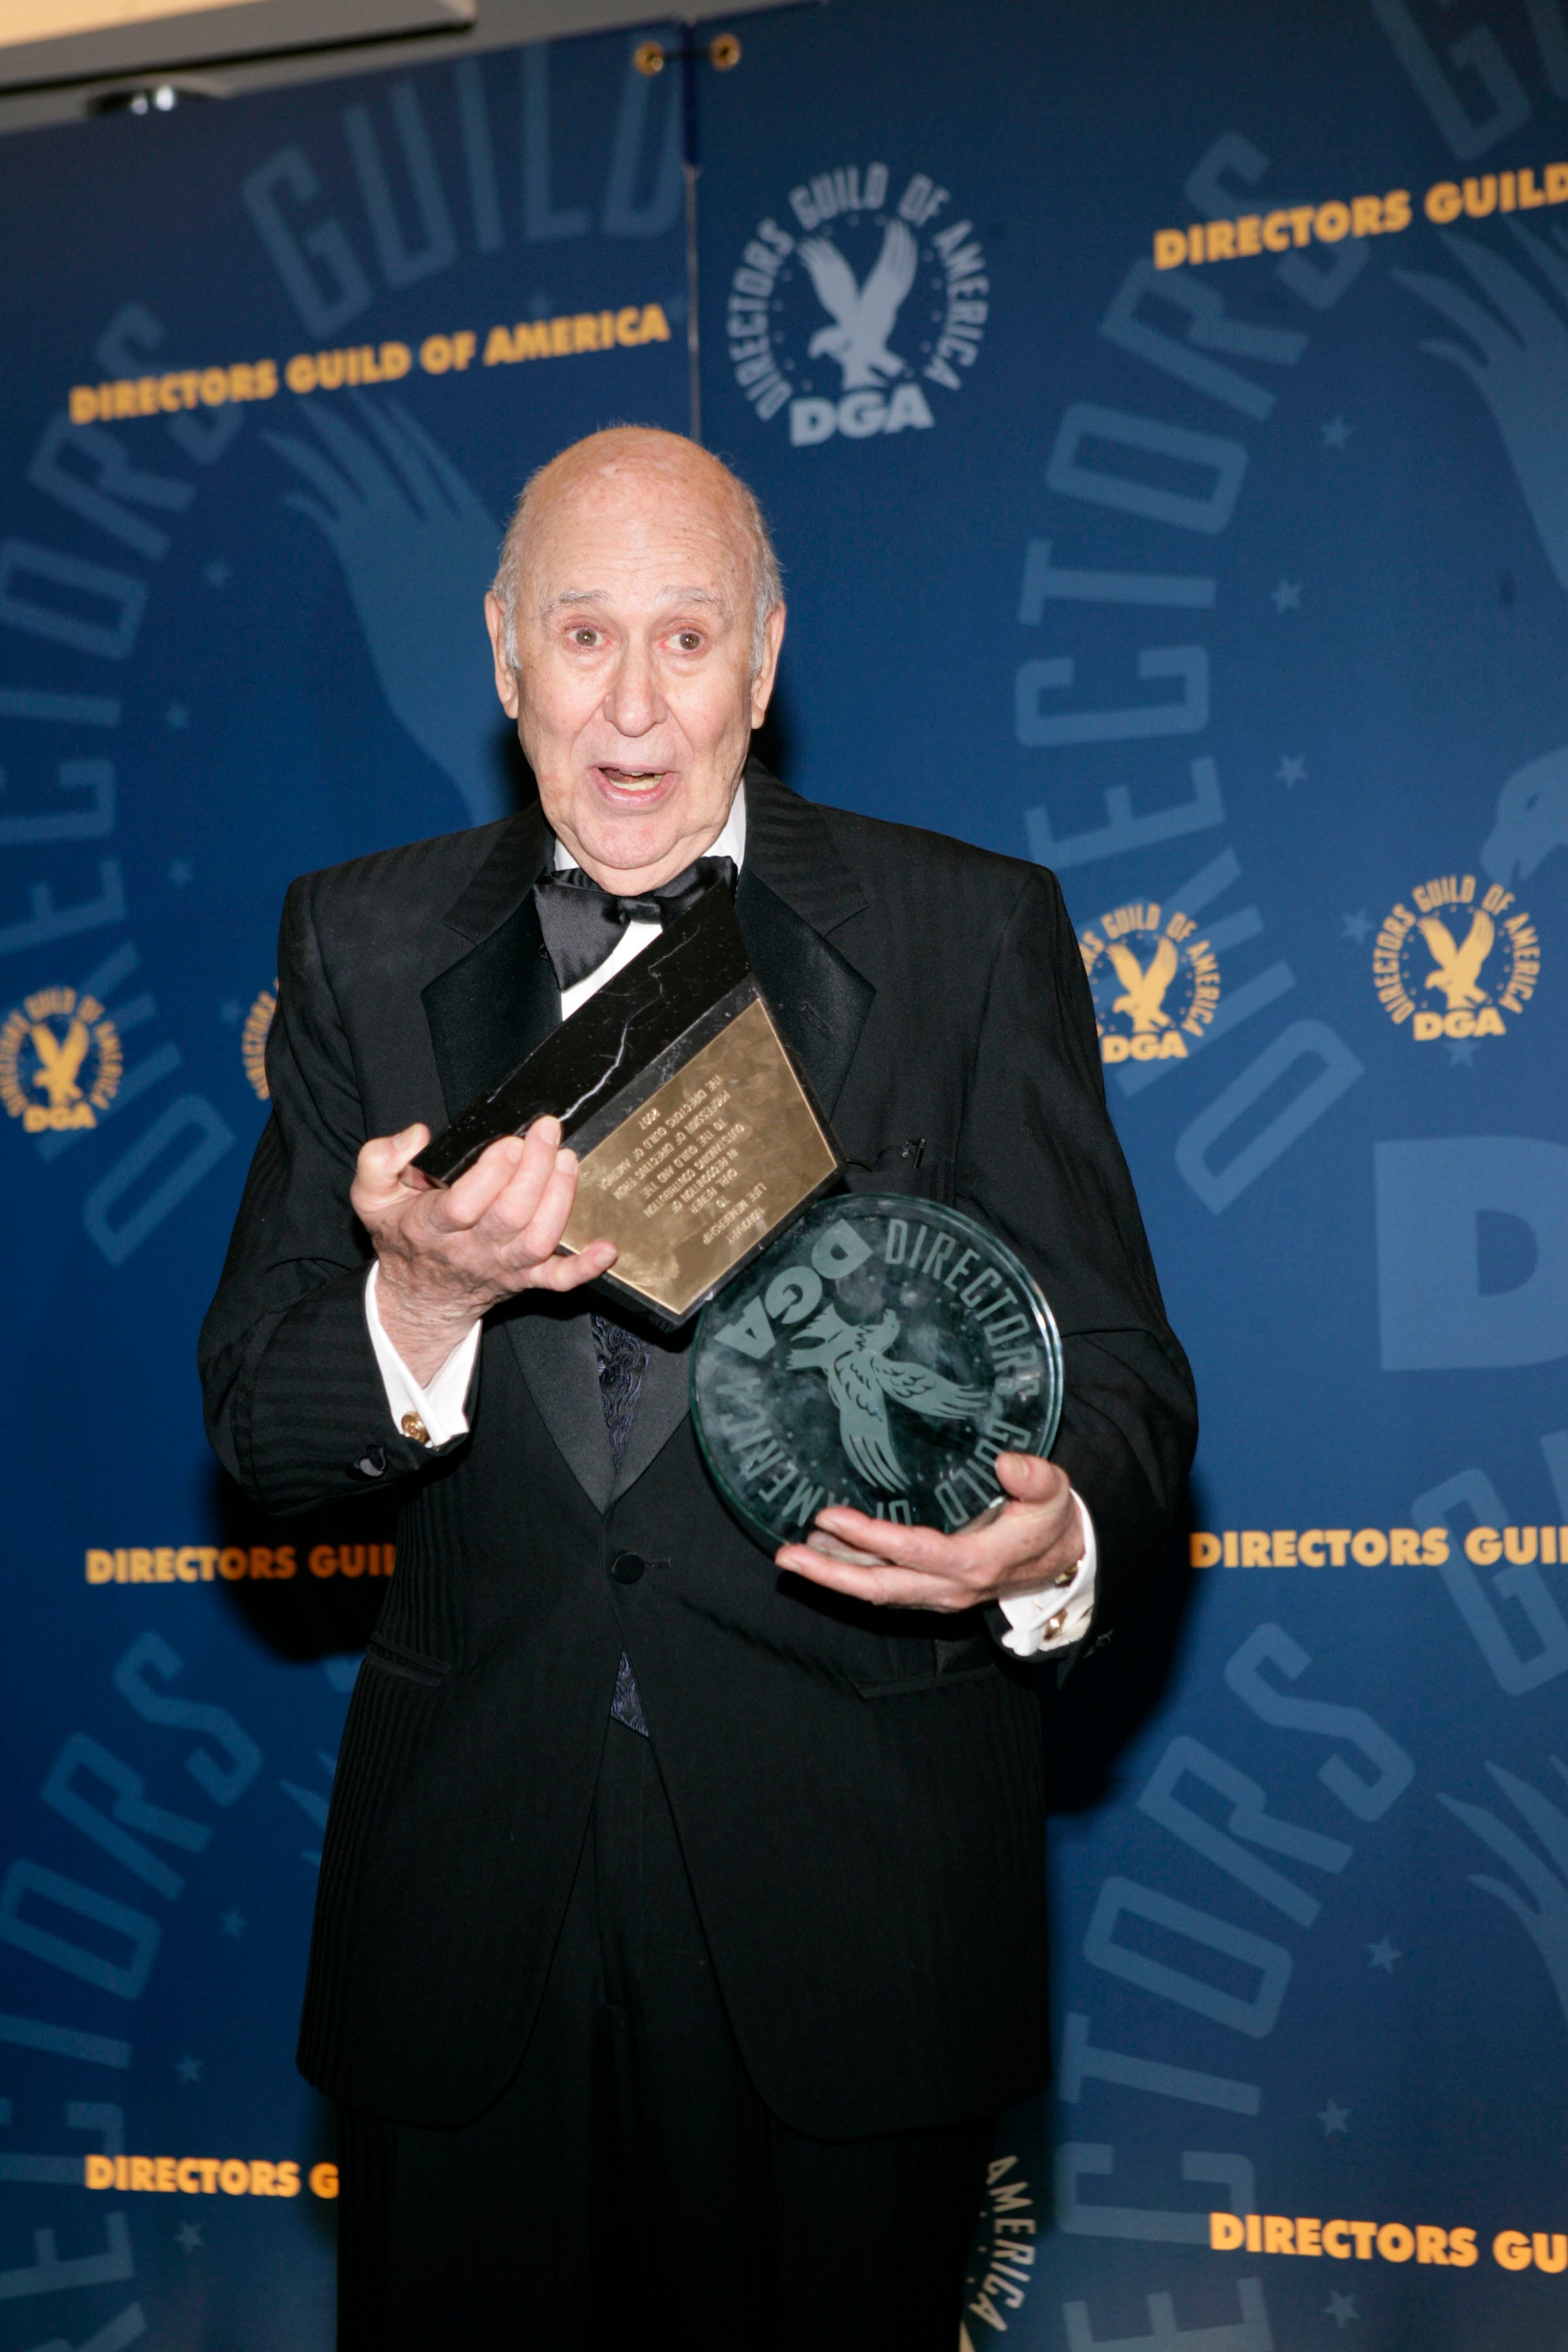 Carl Reiner was comedy genius : Jason Alexander, Jerry Seinfeld, Rob Reiner pay tribute